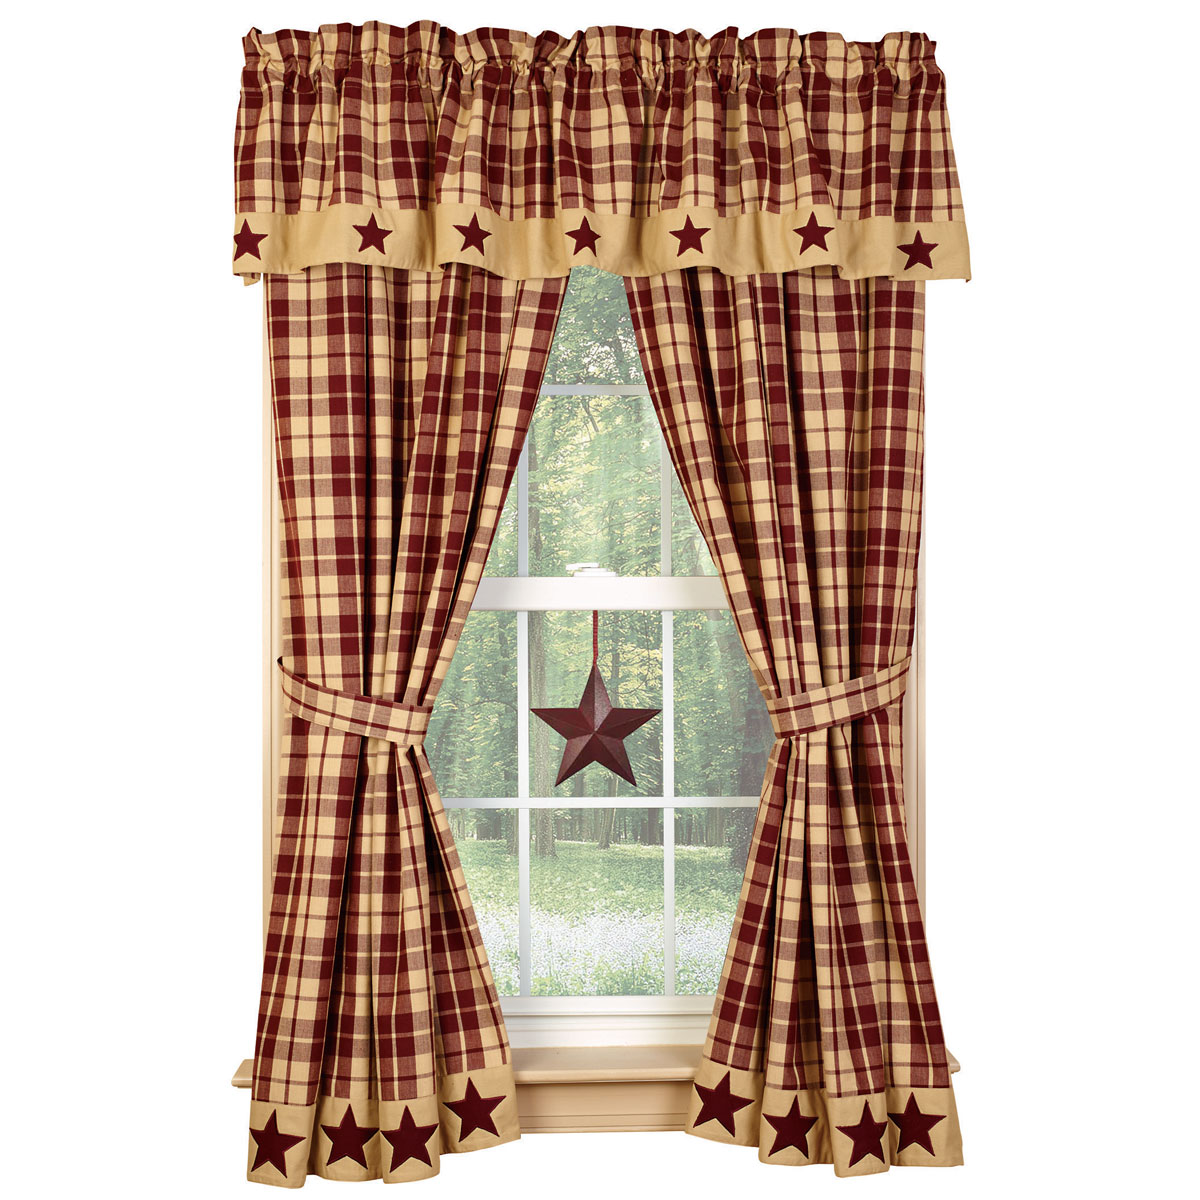 CHC 90588 Burgundy Farmhouse Star 63in Curtain Panels